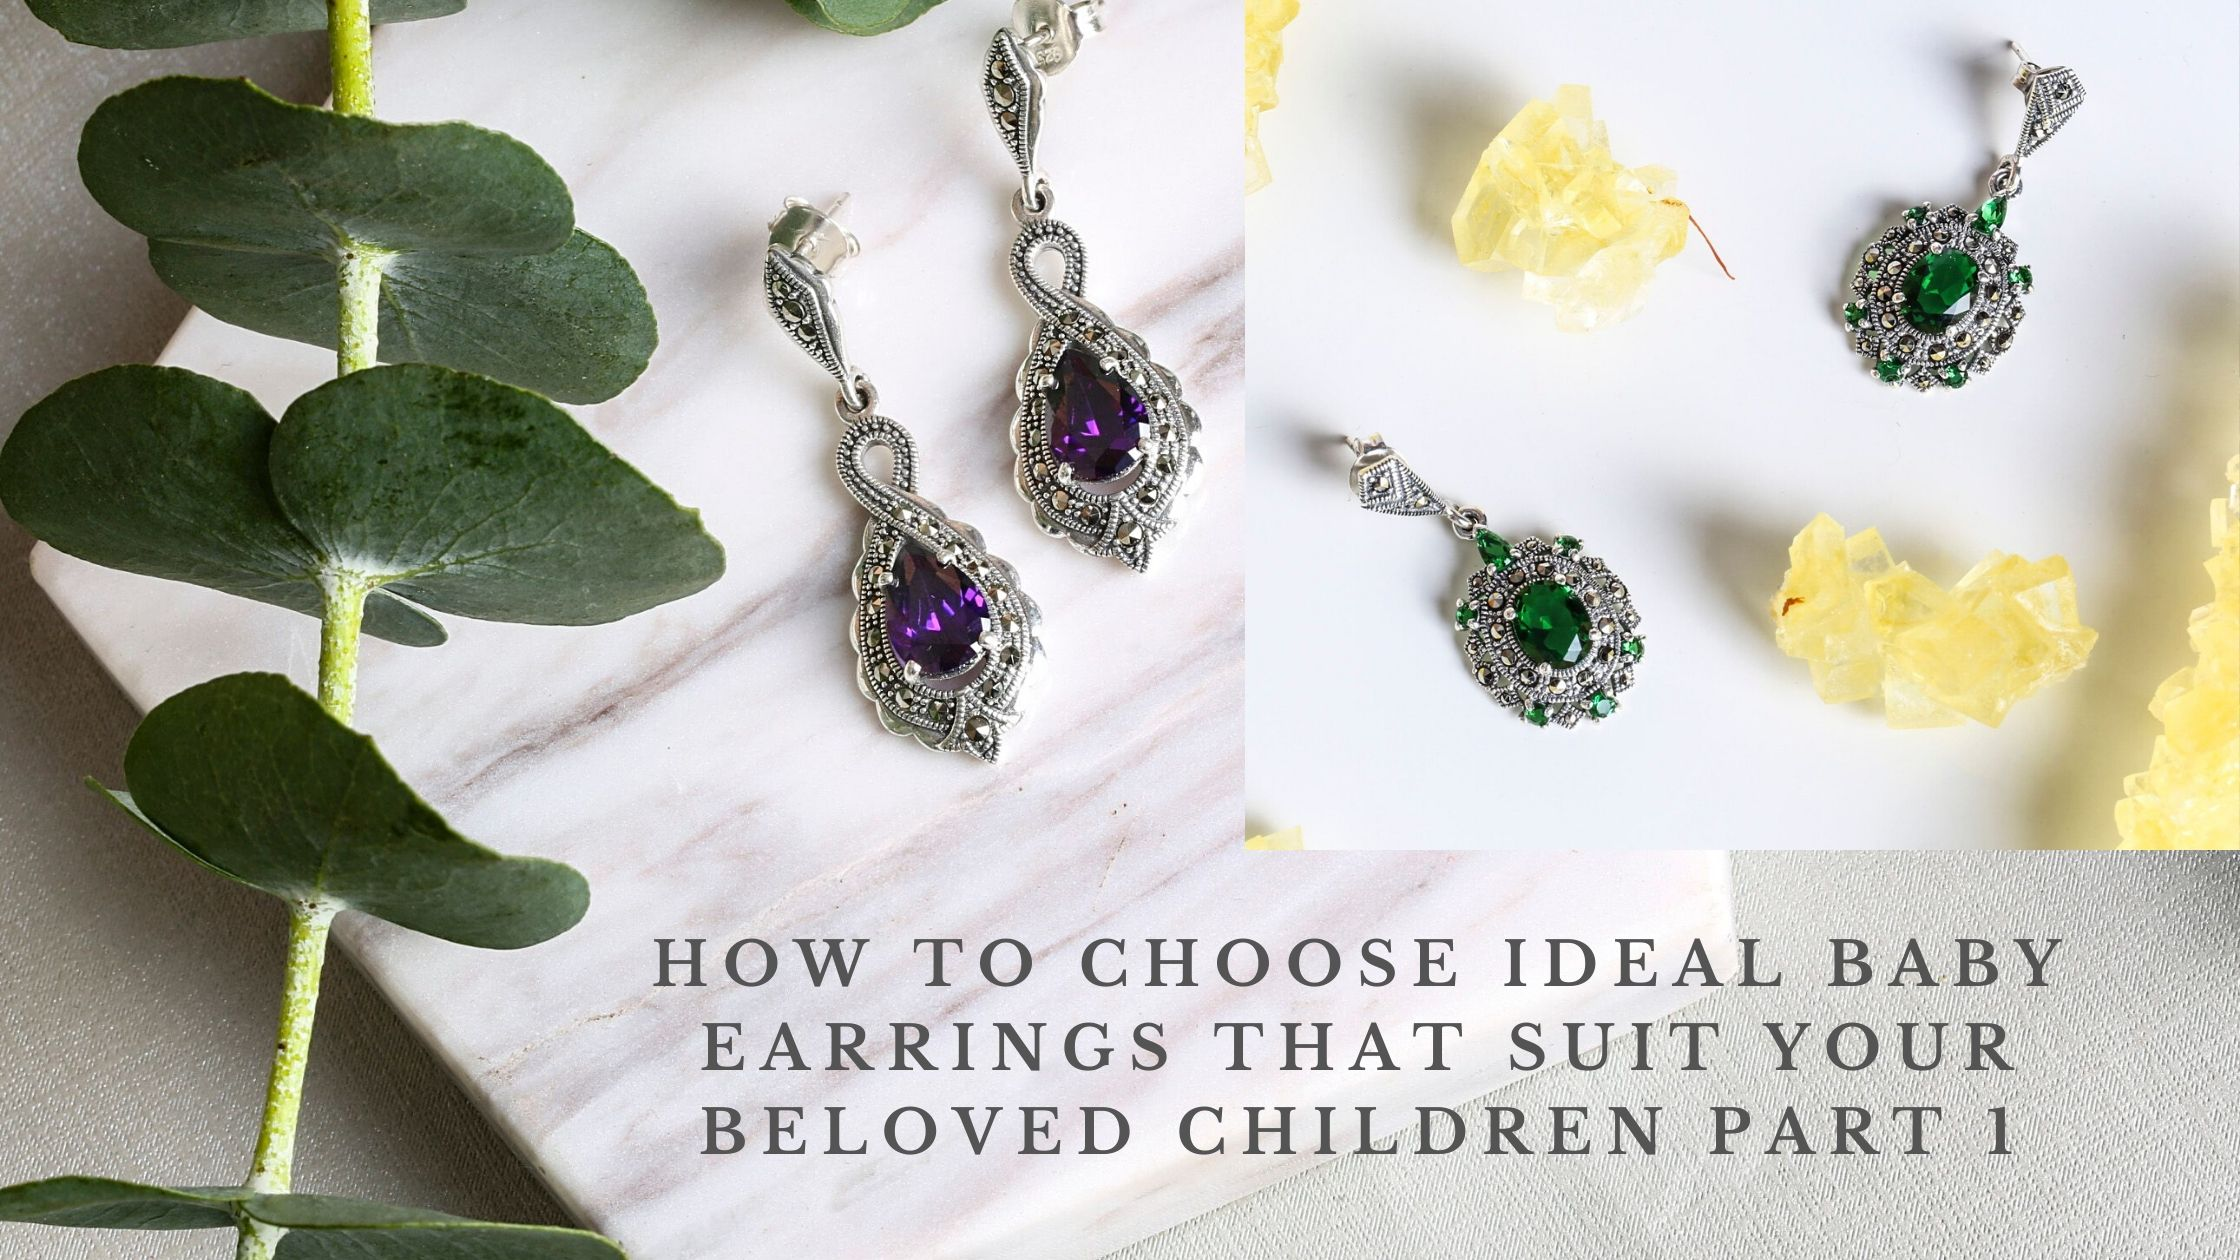 HOW TO CHOOSE IDEAL BABY EARRINGS THAT SUIT YOUR BELOVED CHILDREN PART 1